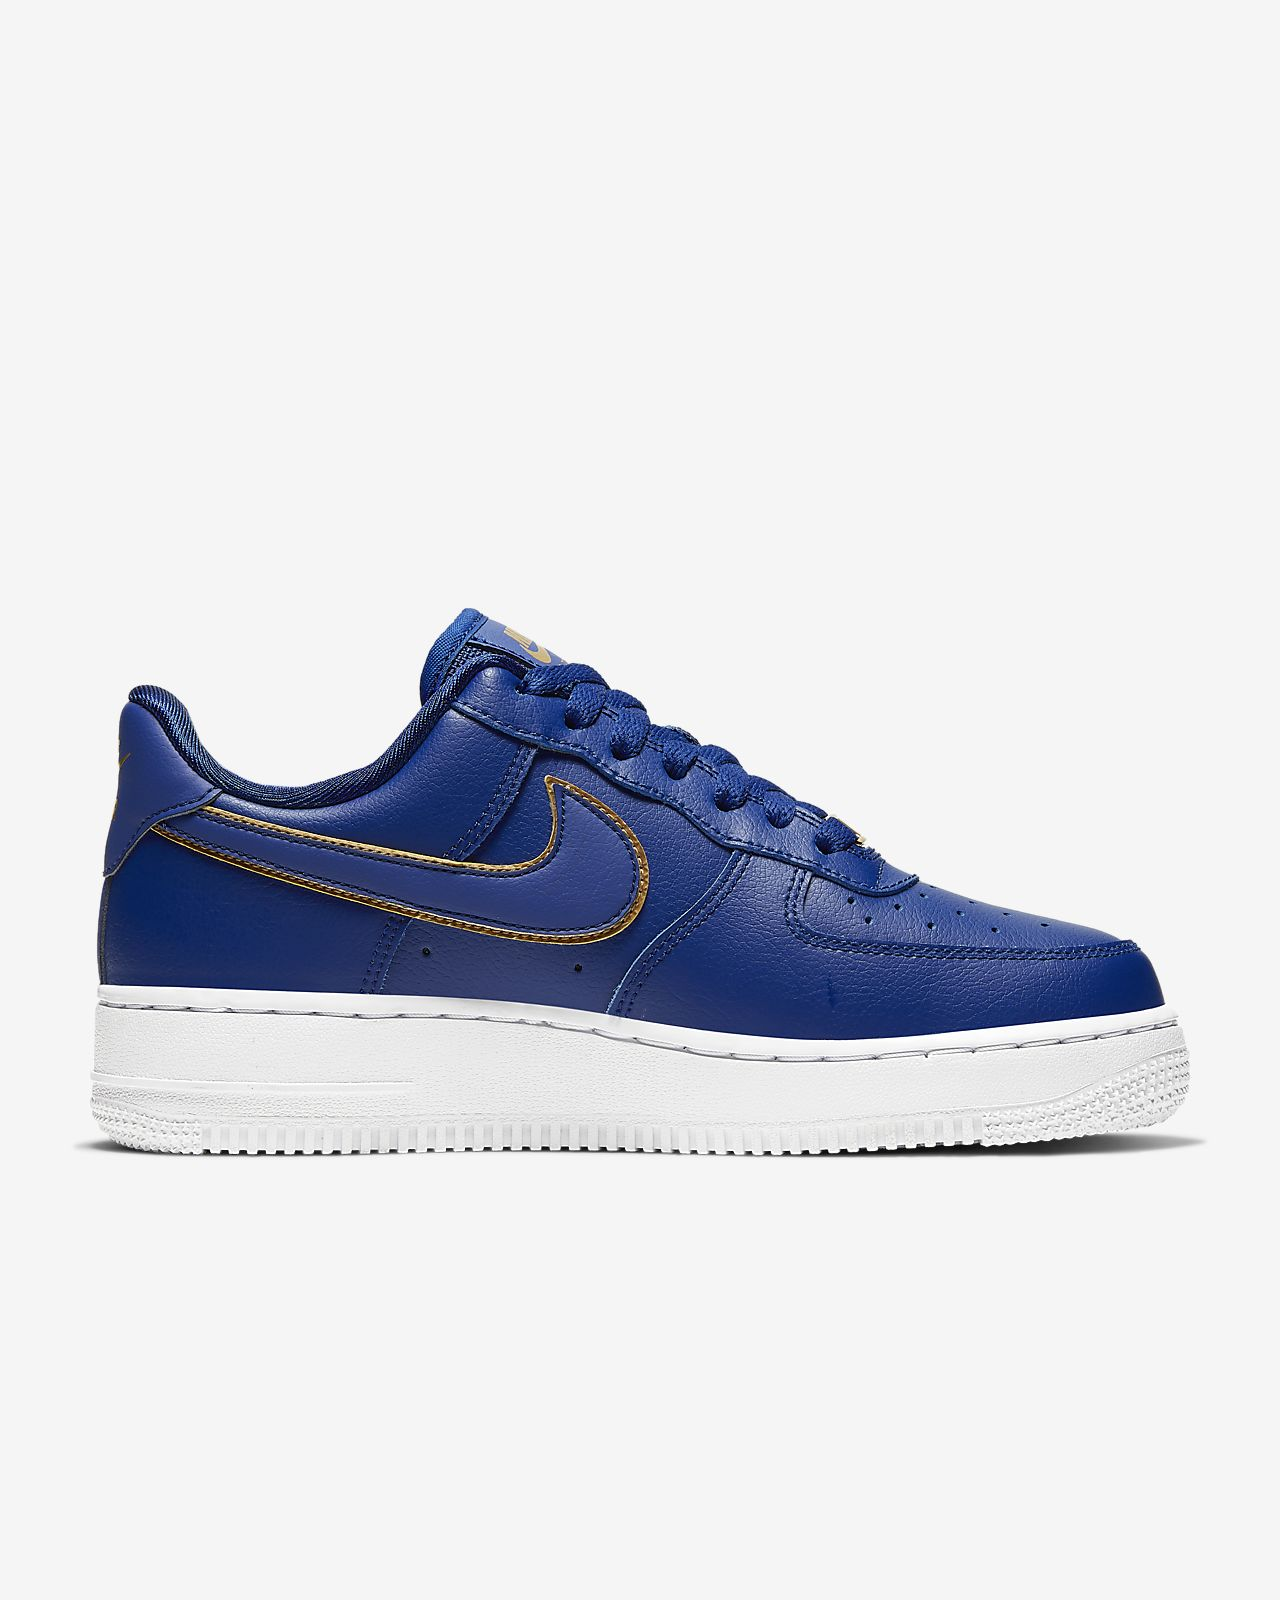 Chaussure Nike Air Force 1 '07 Essential Icon Clash pour Femme